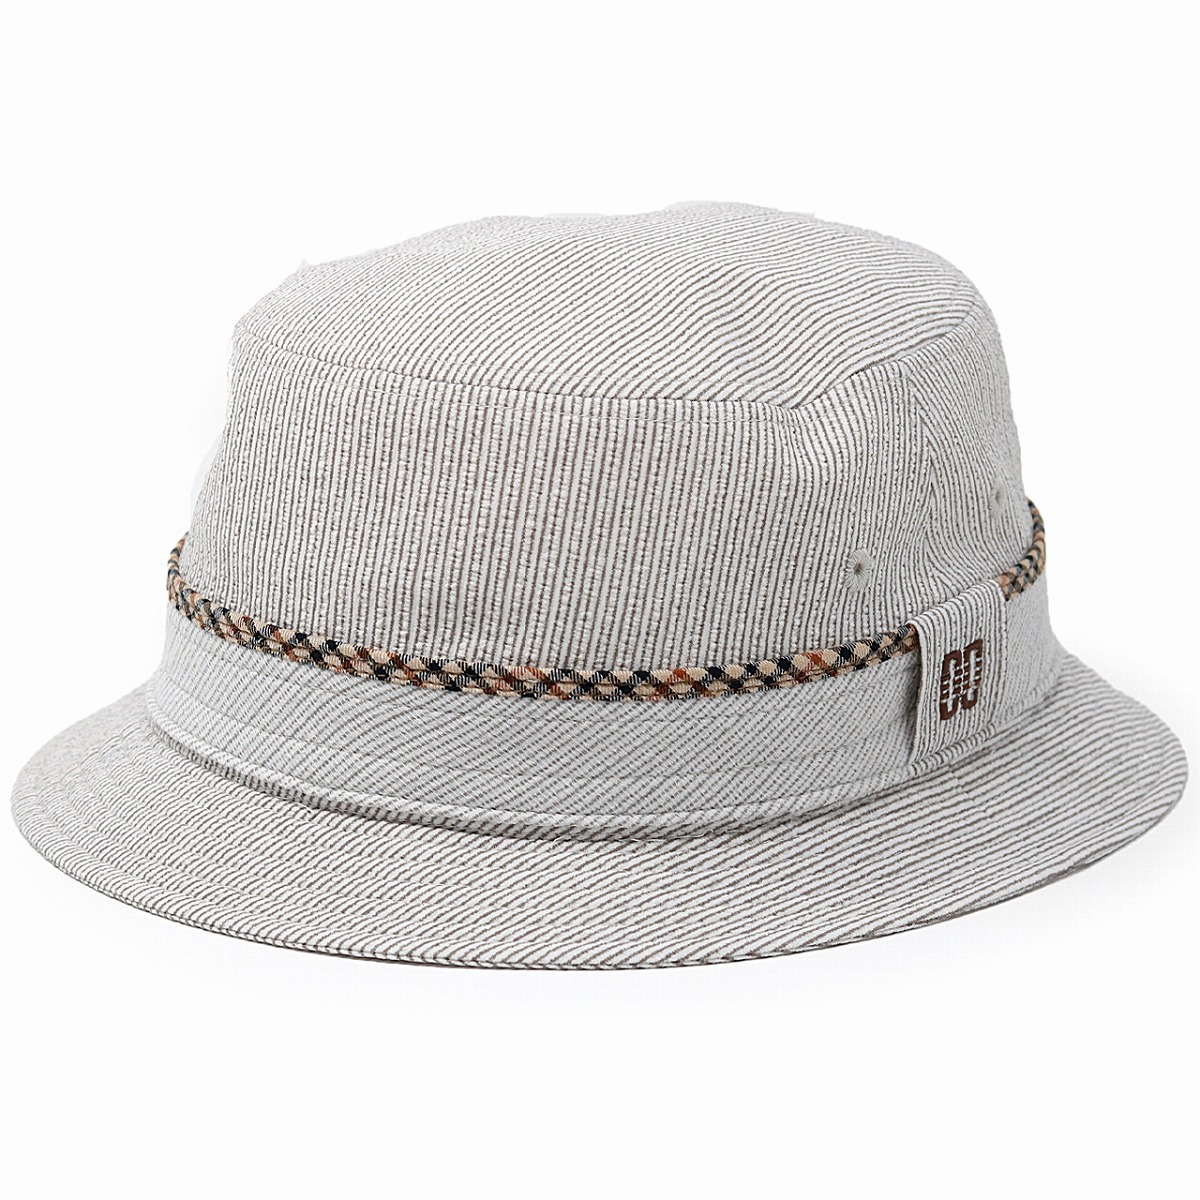 b9042e572b2 It is a gift present hat mail order in the size S M L   dark blue navy   bucket hat  Father s Day when the size that a good daks hat men DAKS ...